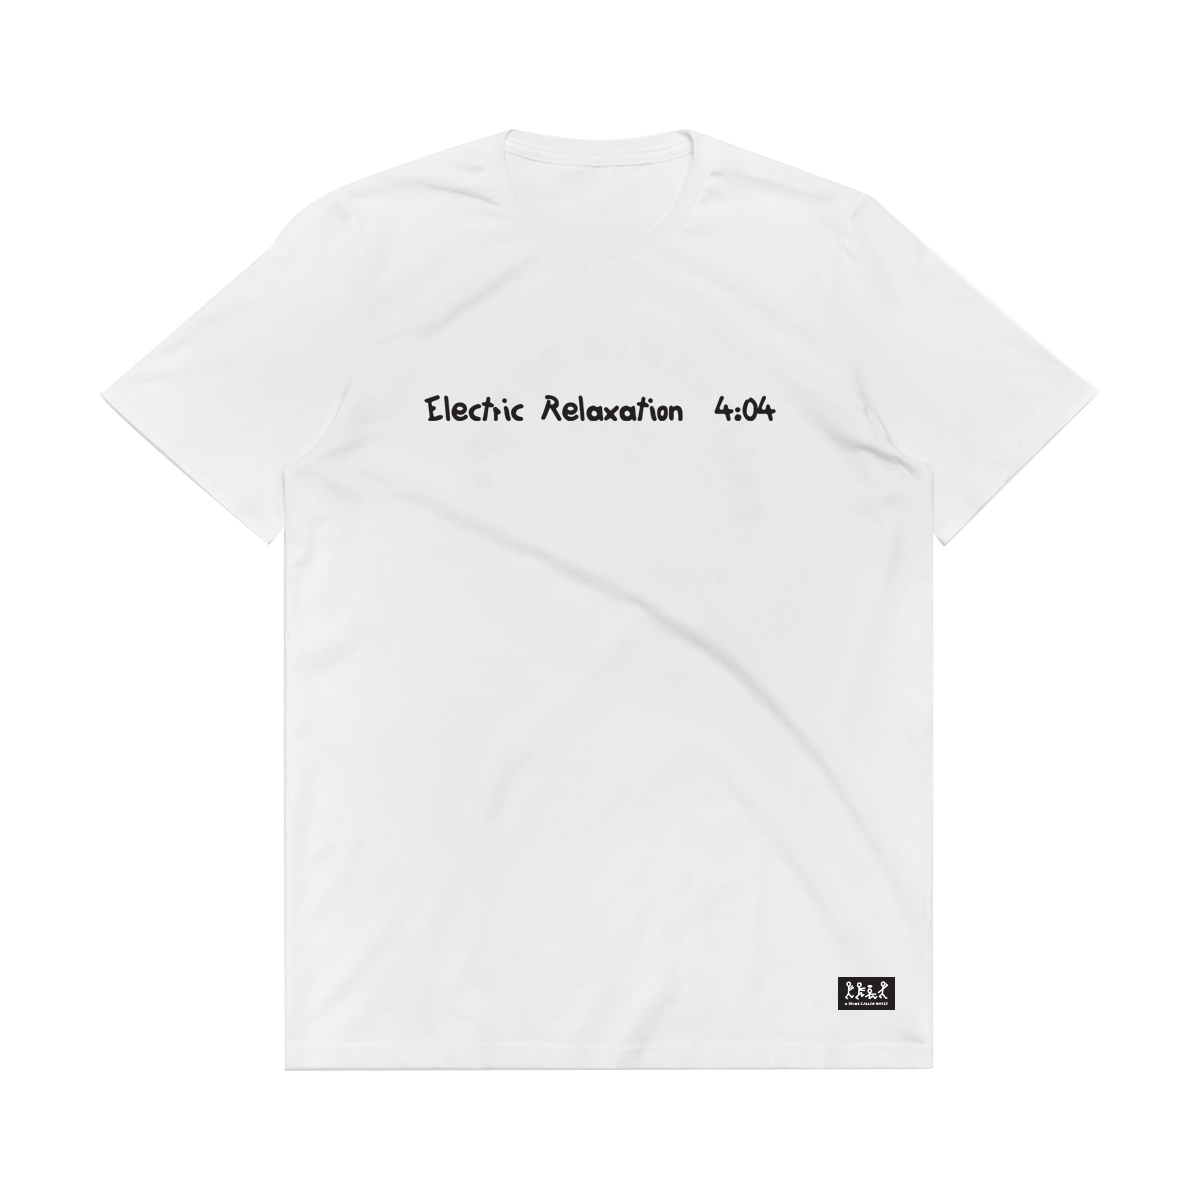 Electric Relaxation White T-shirt